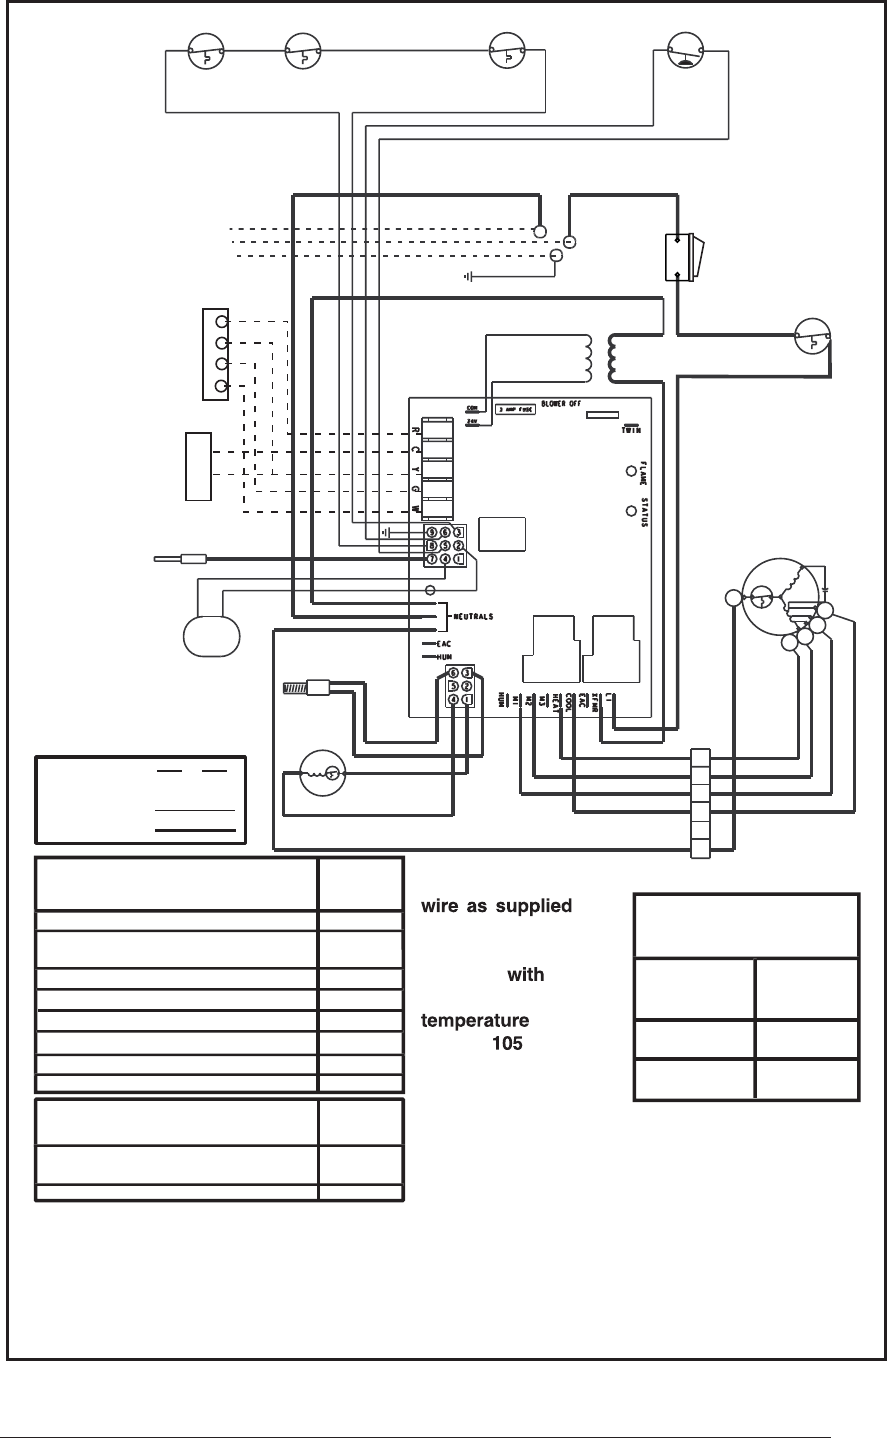 Nordyne 903992 Thermostat Wiring Diagram in addition Creative Storage Solutions likewise Avadelle together with RepairGuideContent furthermore Lux 1500 Wiring Diagram. on lux 1500 thermostat